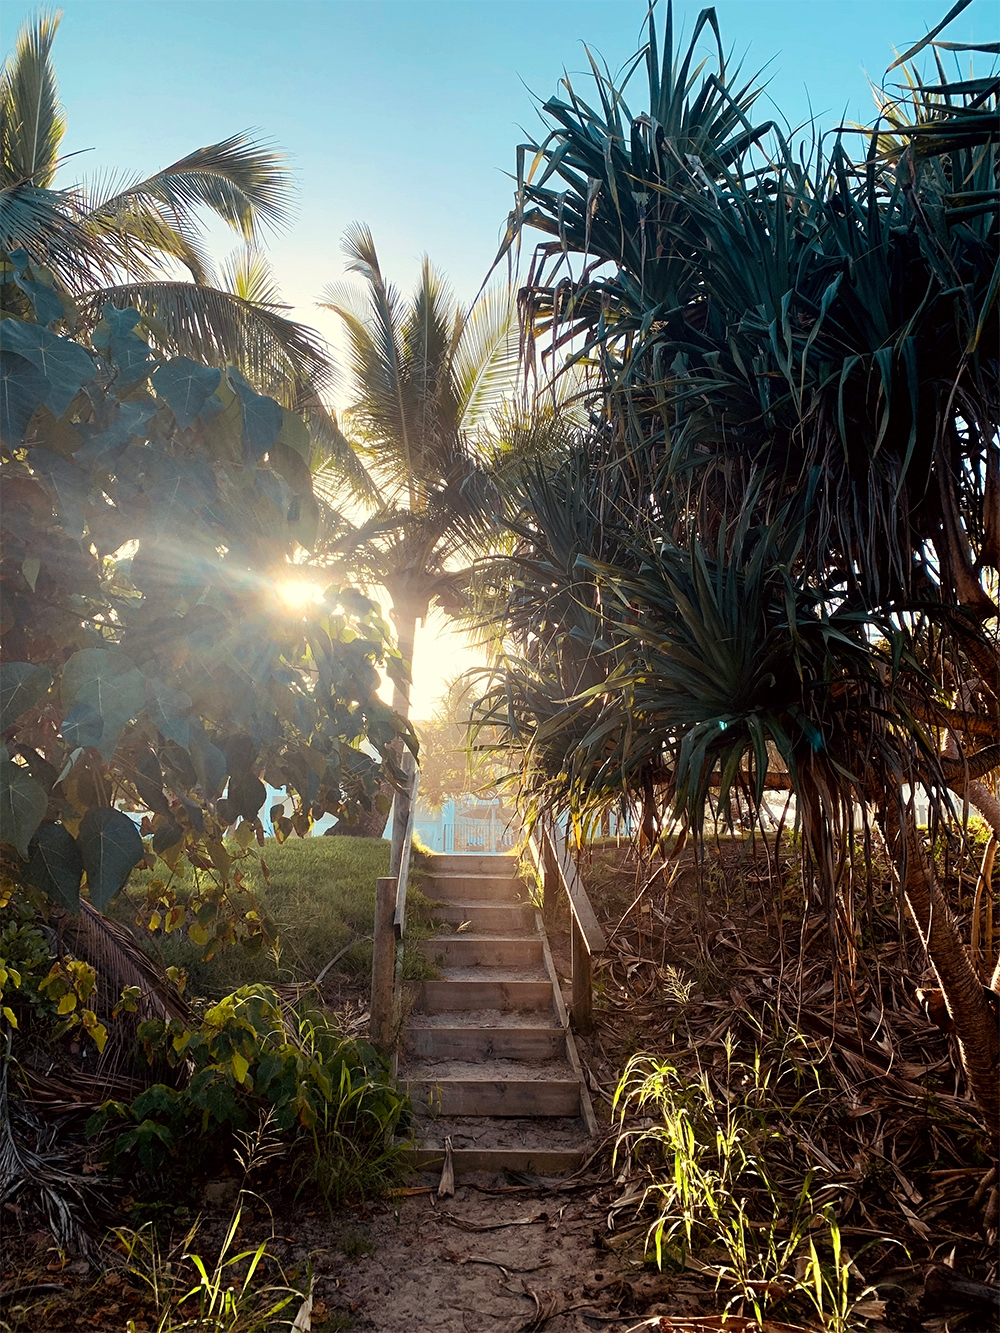 The sun peaks through the trees as it rises over a small staircase and native plants